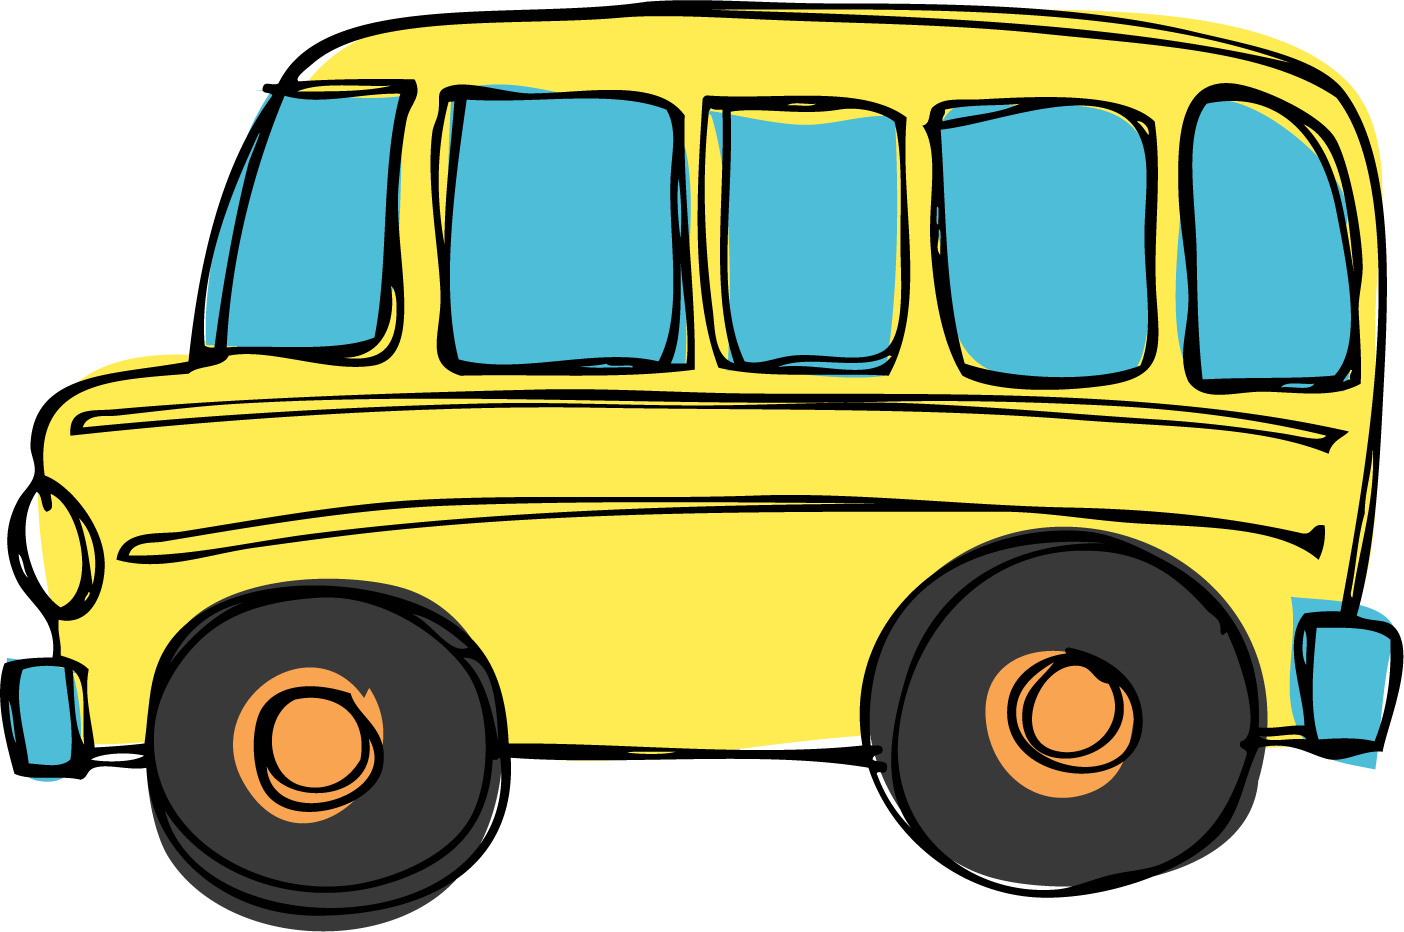 Transport bus clipart.